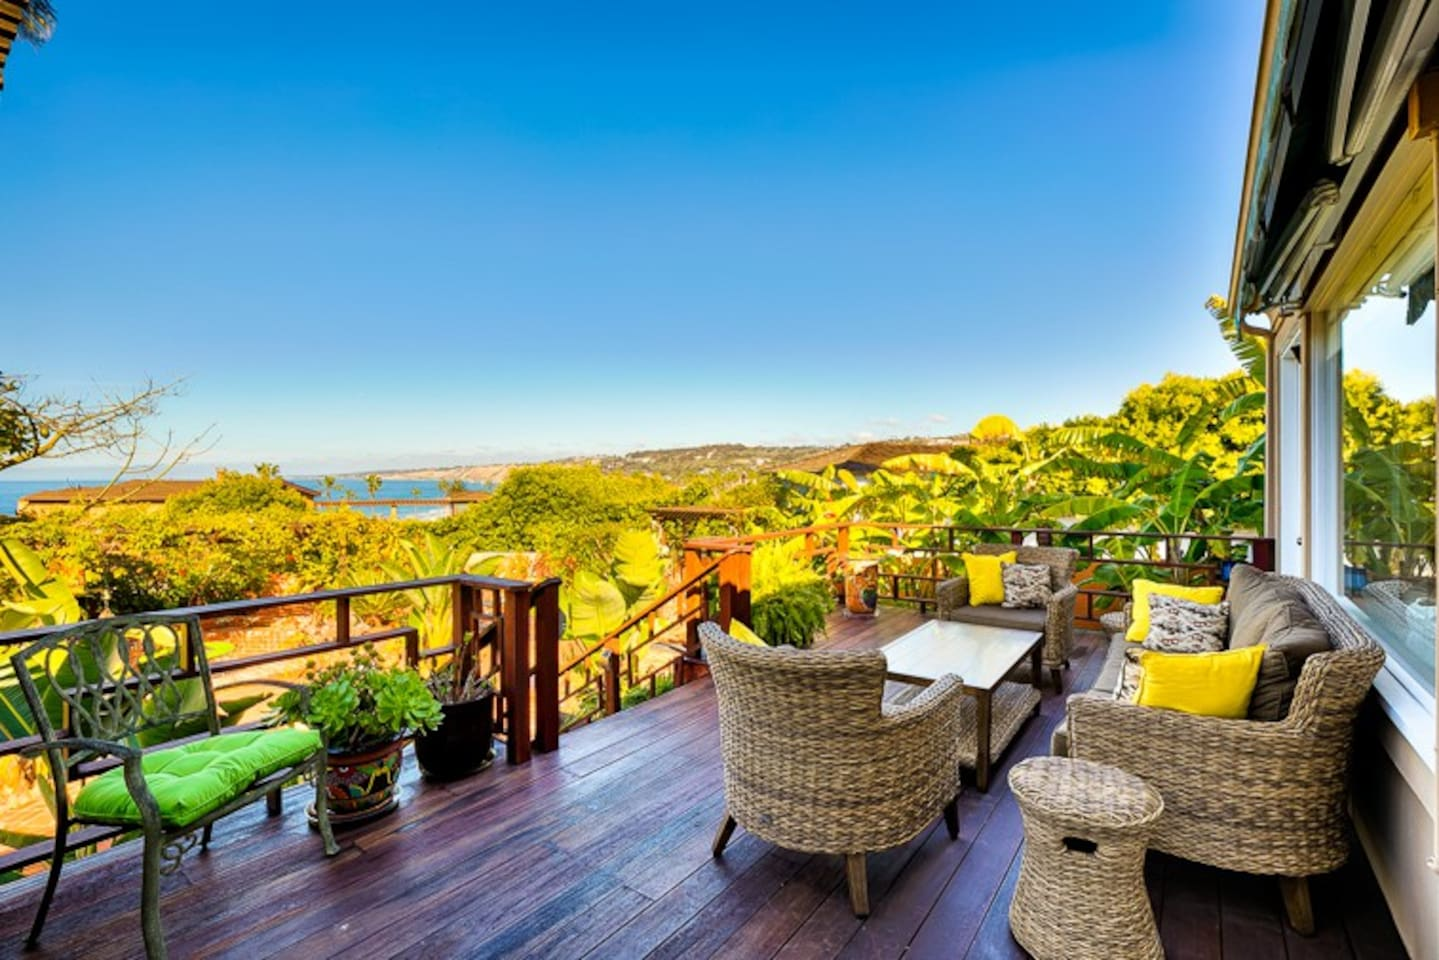 Lounge on the back deck and enjoy the ocean views.